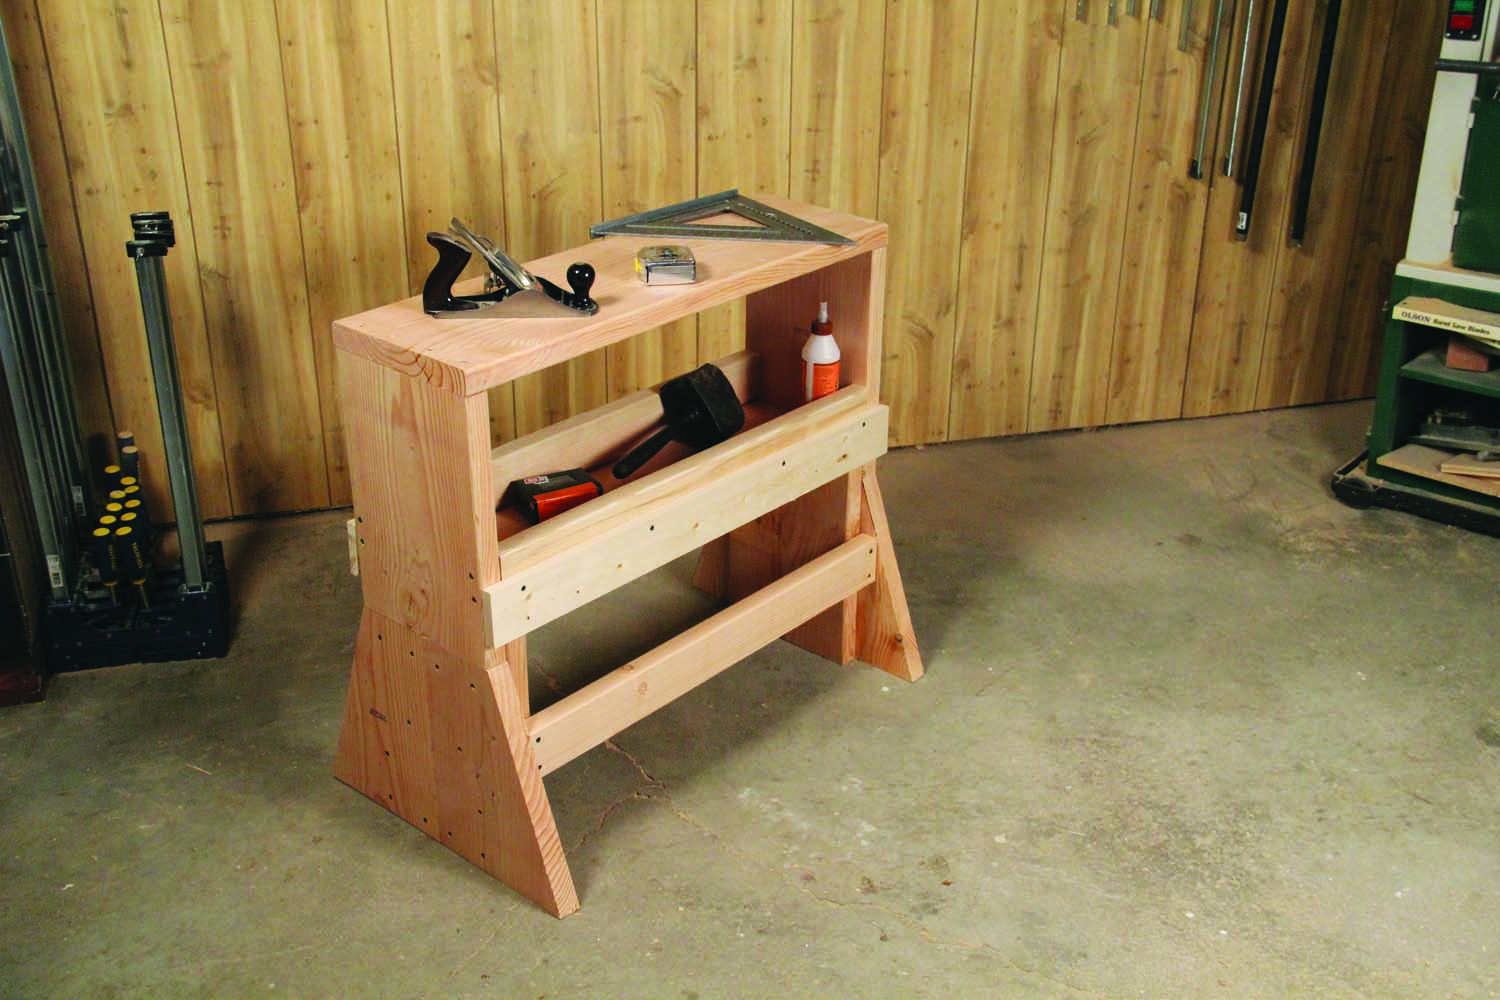 Woodworking Projects I Want To Do - cover